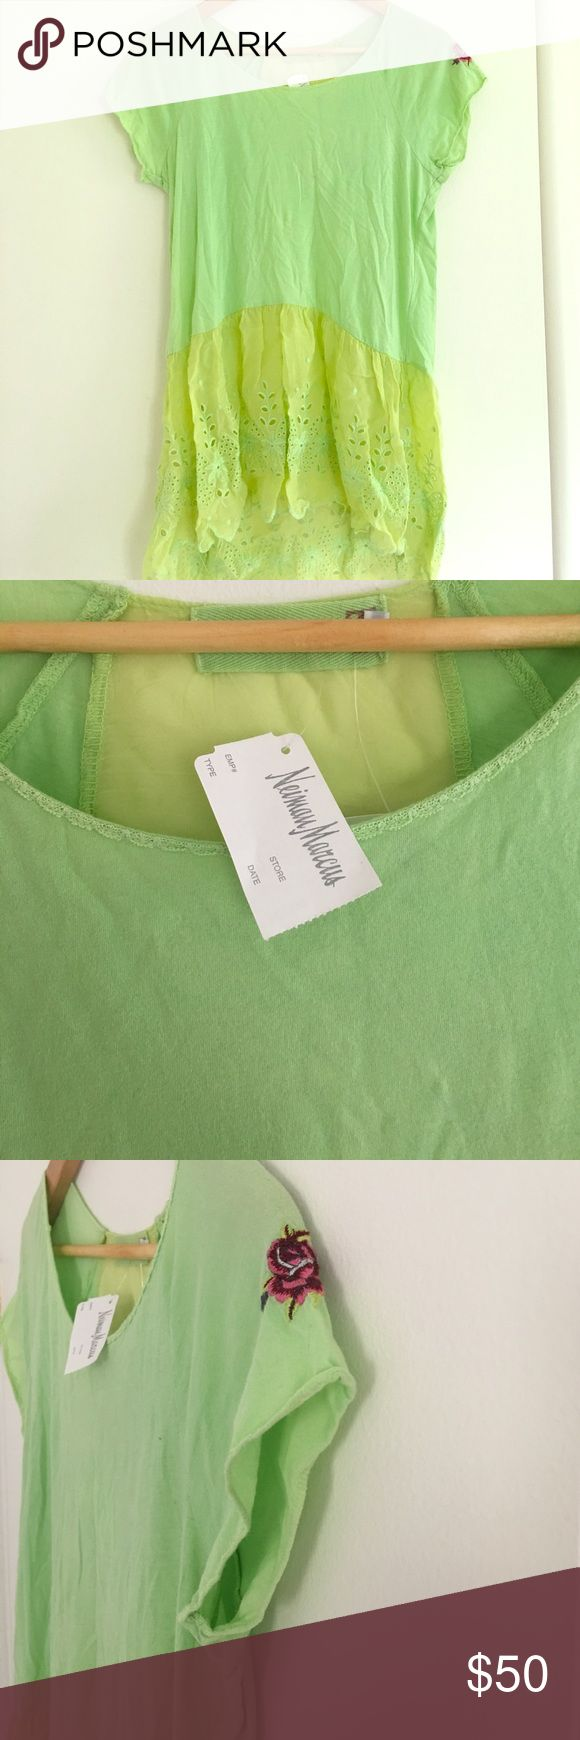 Neiman Marcus Green Tunic Glory Green tunic with lace bottom and sheer section in the back cute flower detail on the left shoulder Neiman Marcus Tops Tunics